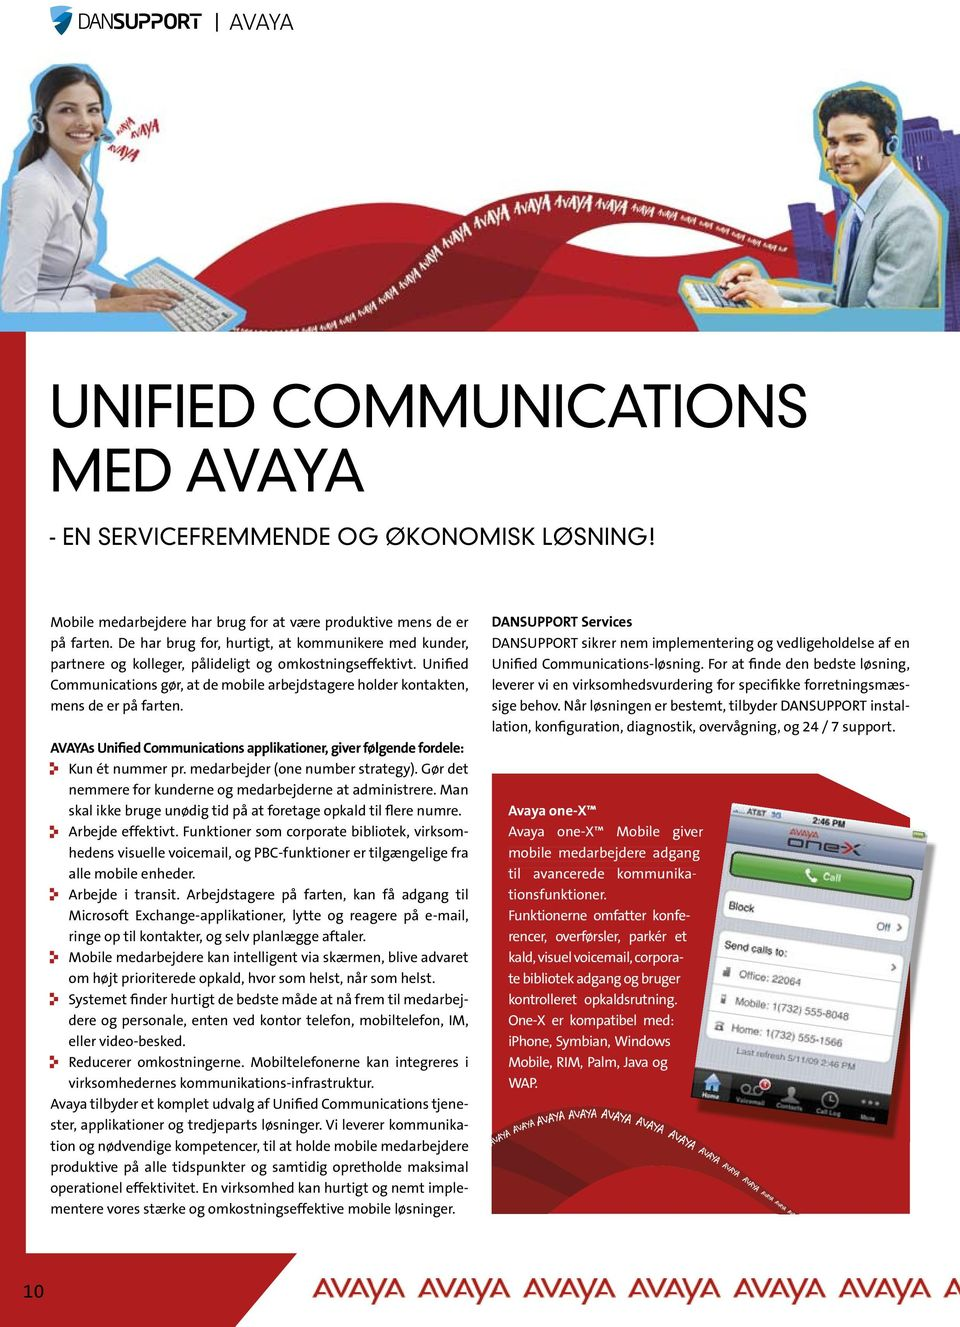 Unified Communications gør, at de mobile arbejdstagere holder kontakten, mens de er på farten. AVAYAs Unified Communications applikationer, giver følgende fordele: Kun ét nummer pr.